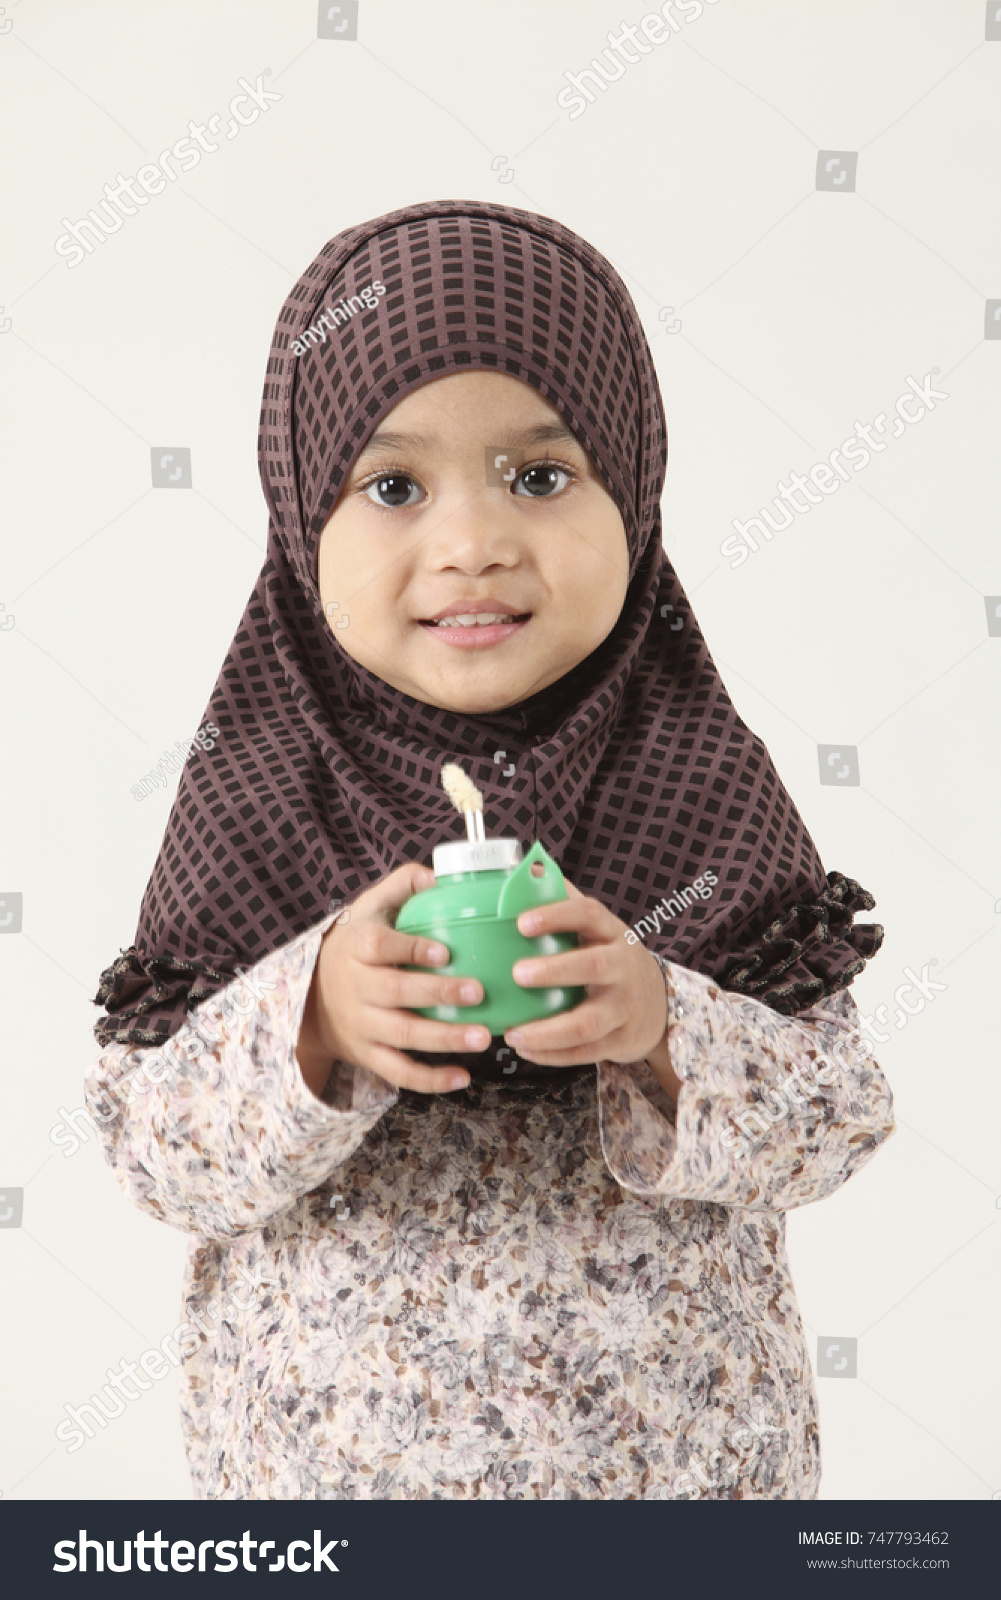 Muslim Malaysian Girl Holding Oil Lamp Stock Photo 747793462 ... for Girl Holding Lamp  588gtk